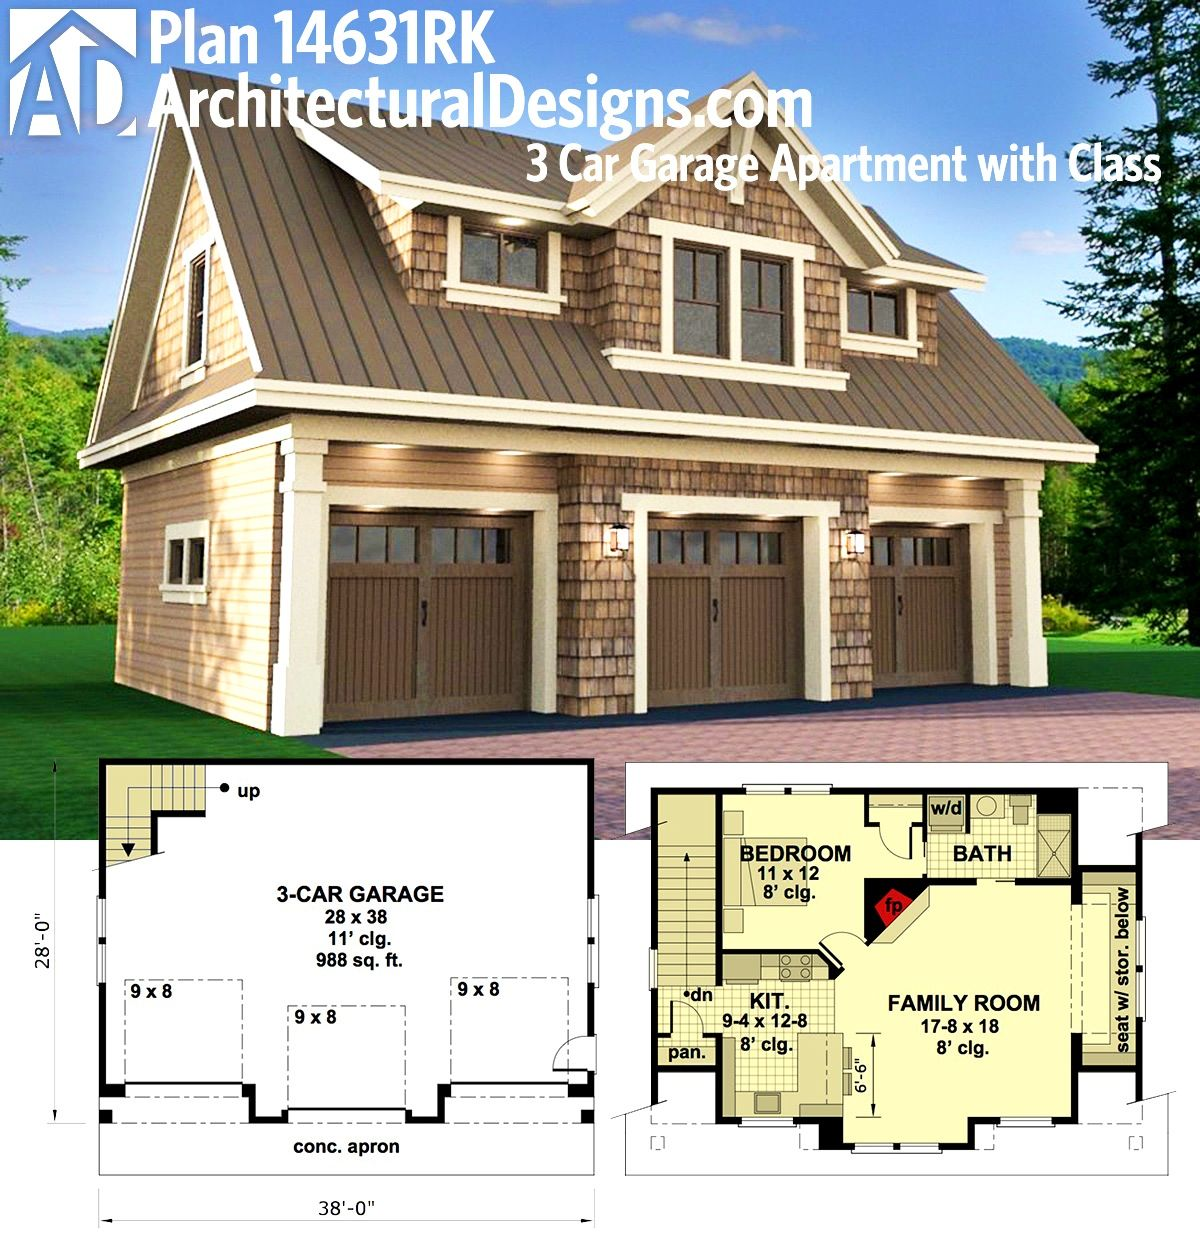 Plan 14653rk Carriage House Plan With Man Cave Potential: 「garage」おしゃれまとめの人気アイデア|Pinterest |yuji 1938